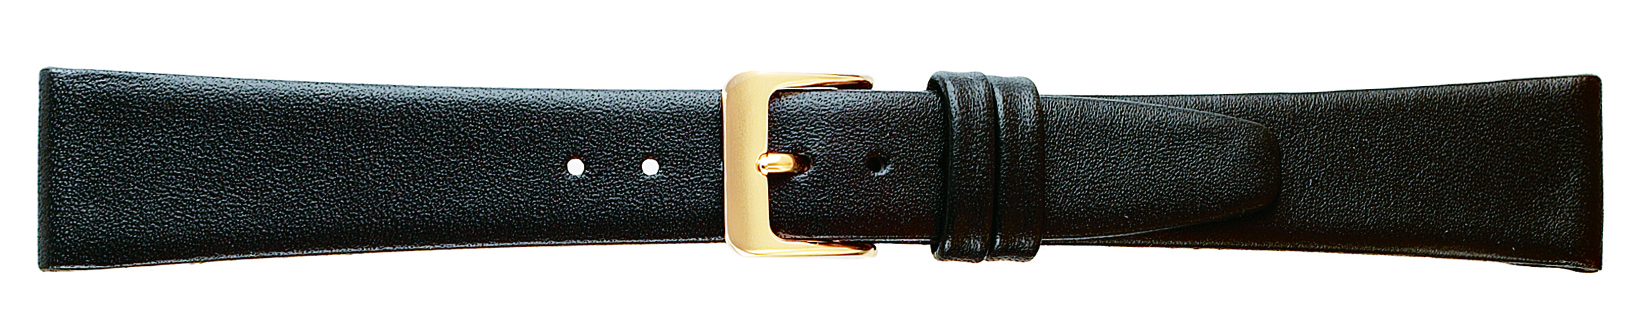 13MM Leather Band Black Smooth Calf -0